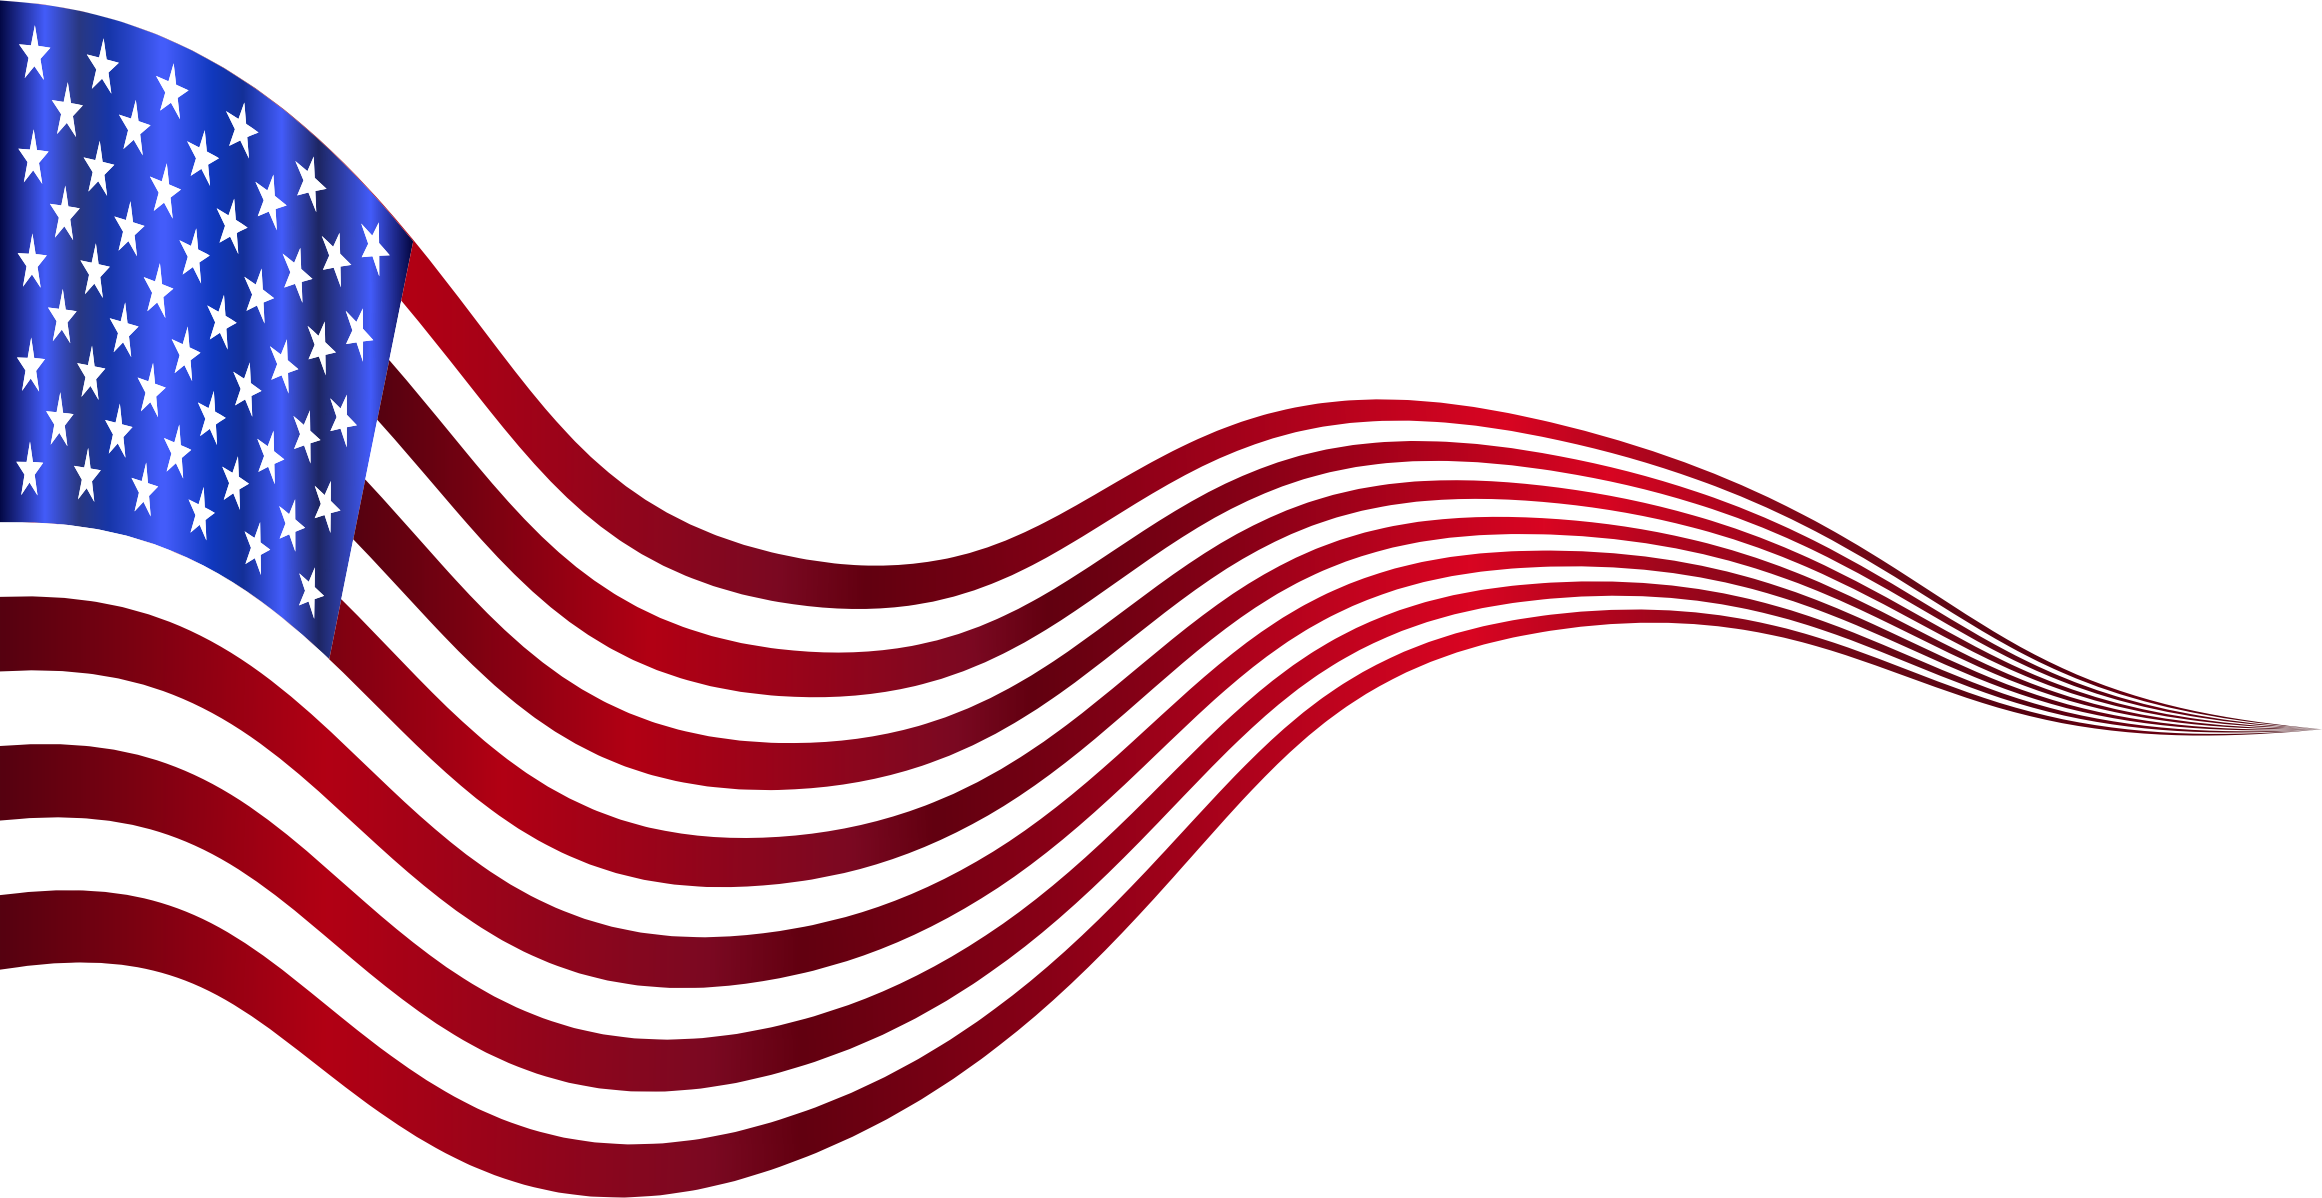 Clipart - Wavy USA Flag Banner 2 Variation 2